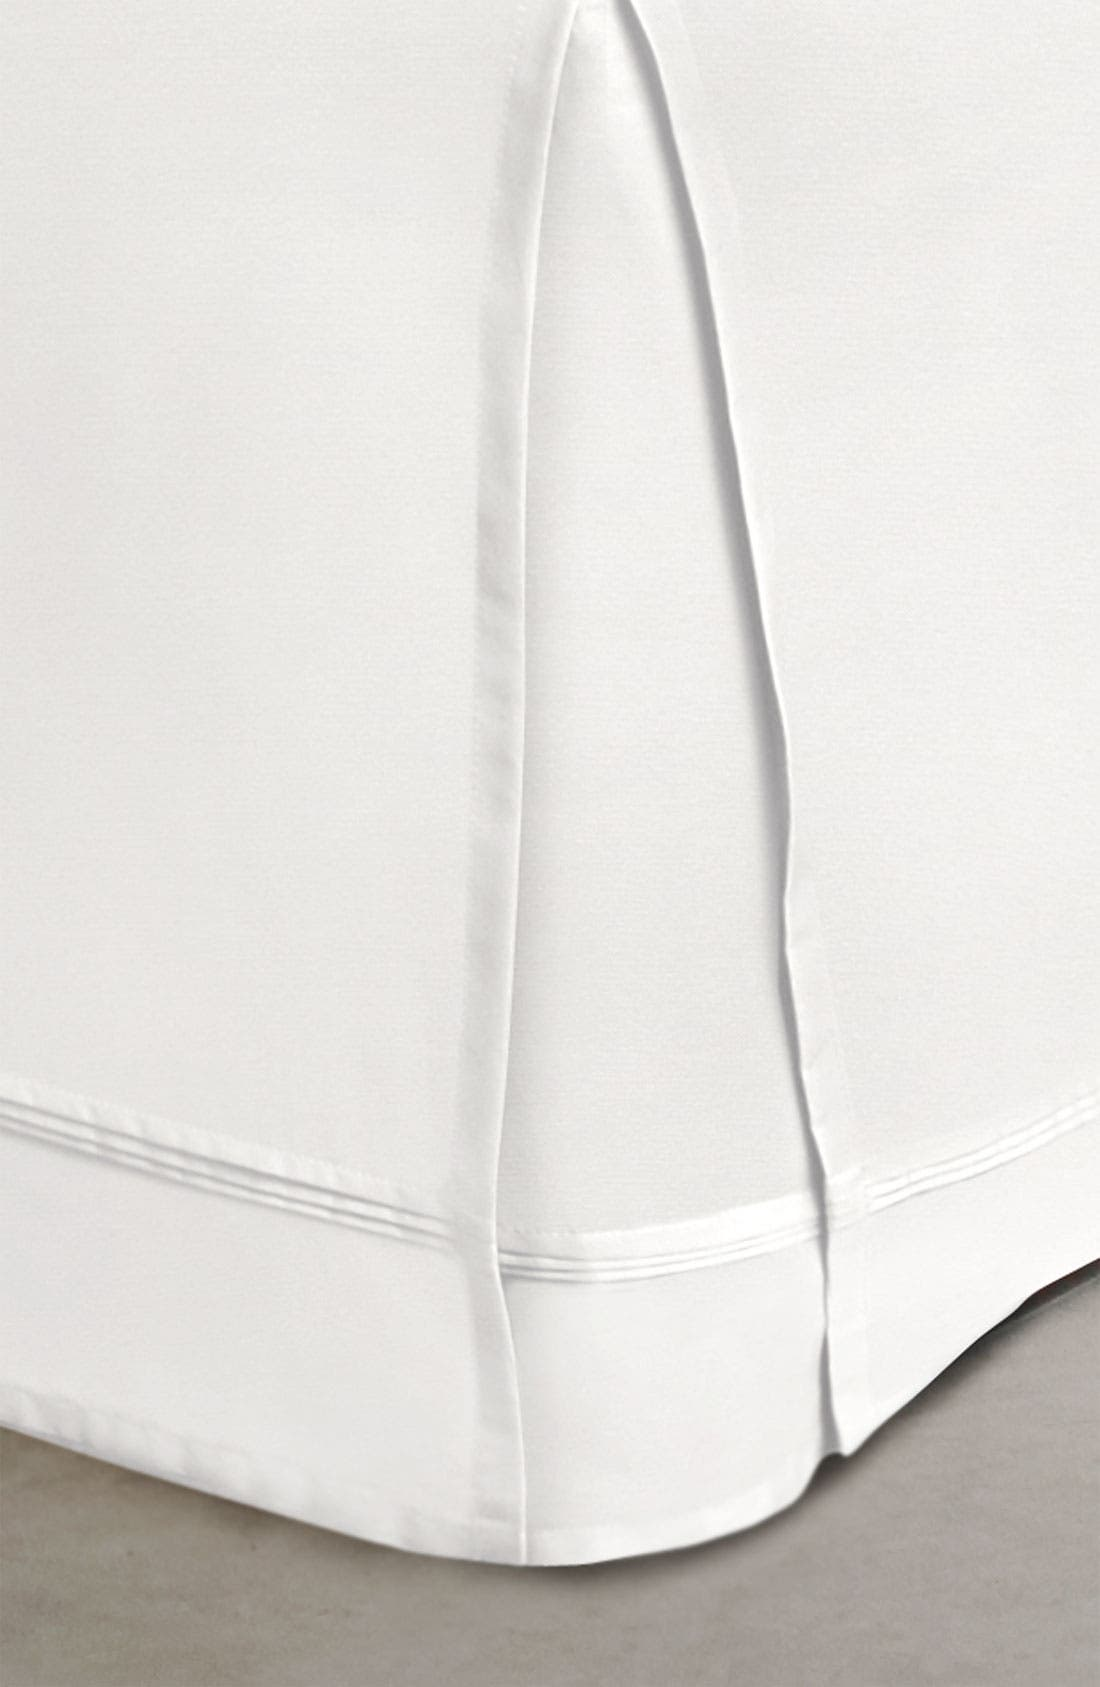 Alternate Image 1 Selected - Donna Karan 'Lustre Seam' Bed Skirt